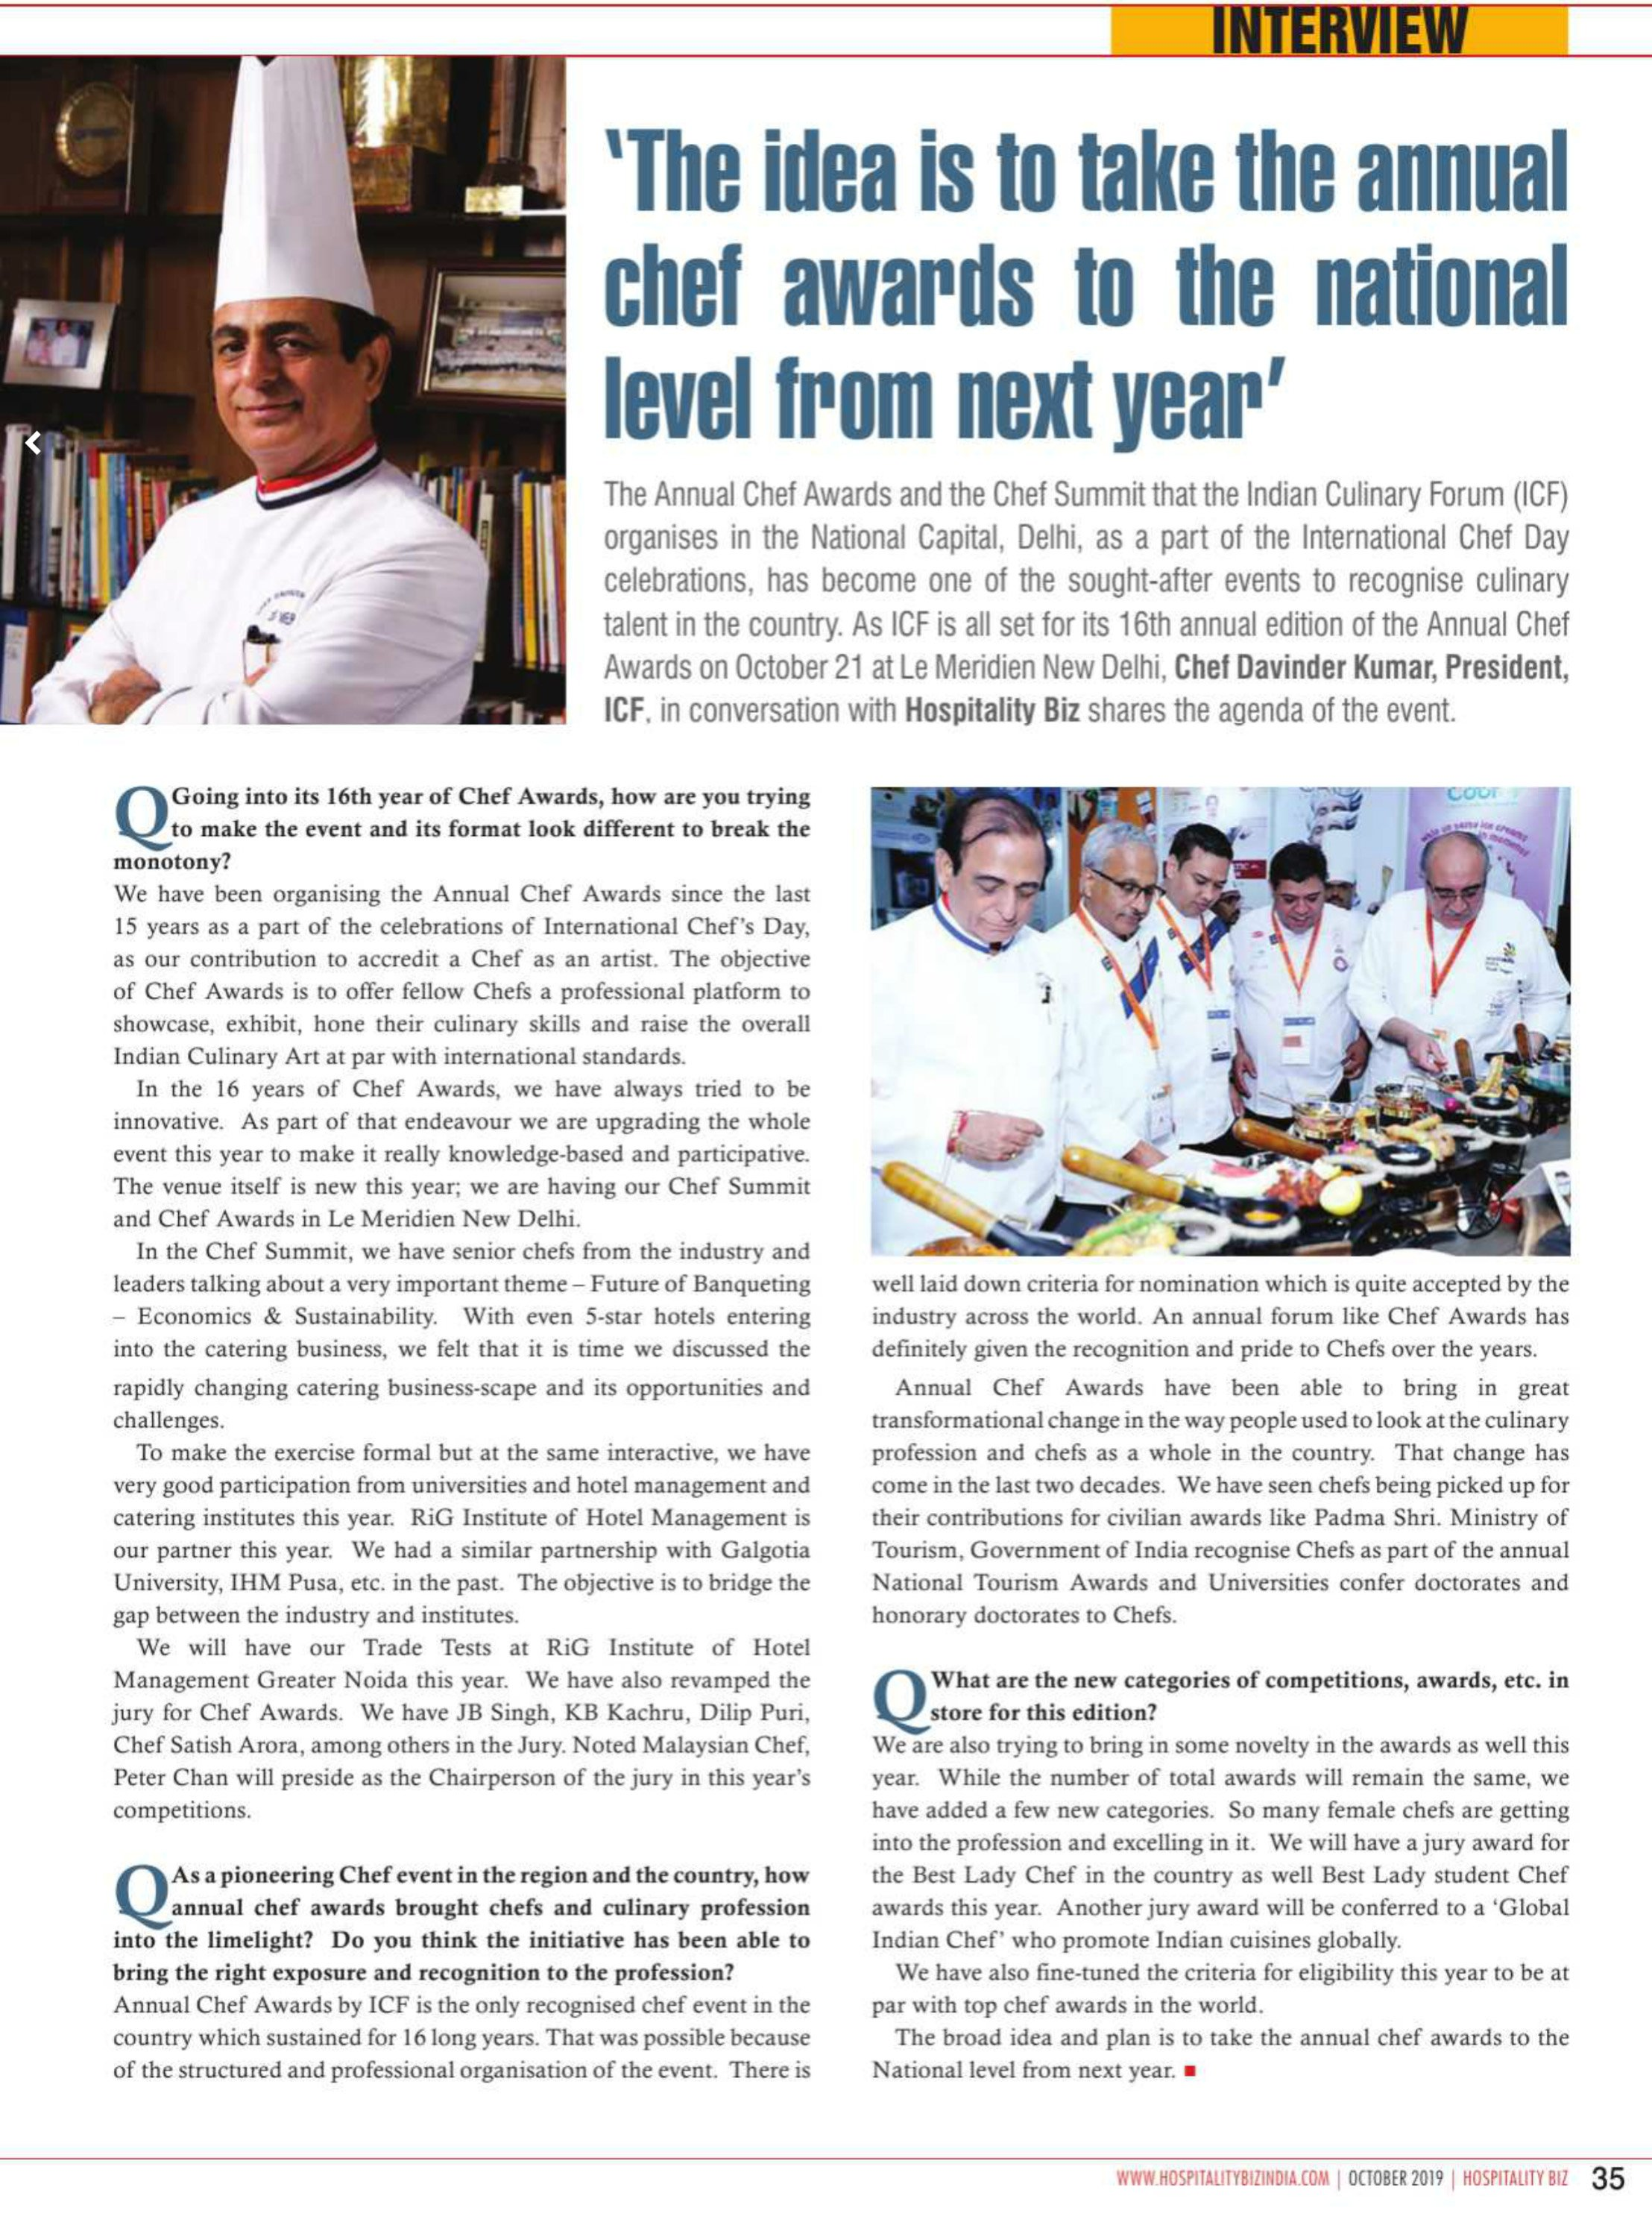 The idea is to take the annual chef awards to the national level from next year